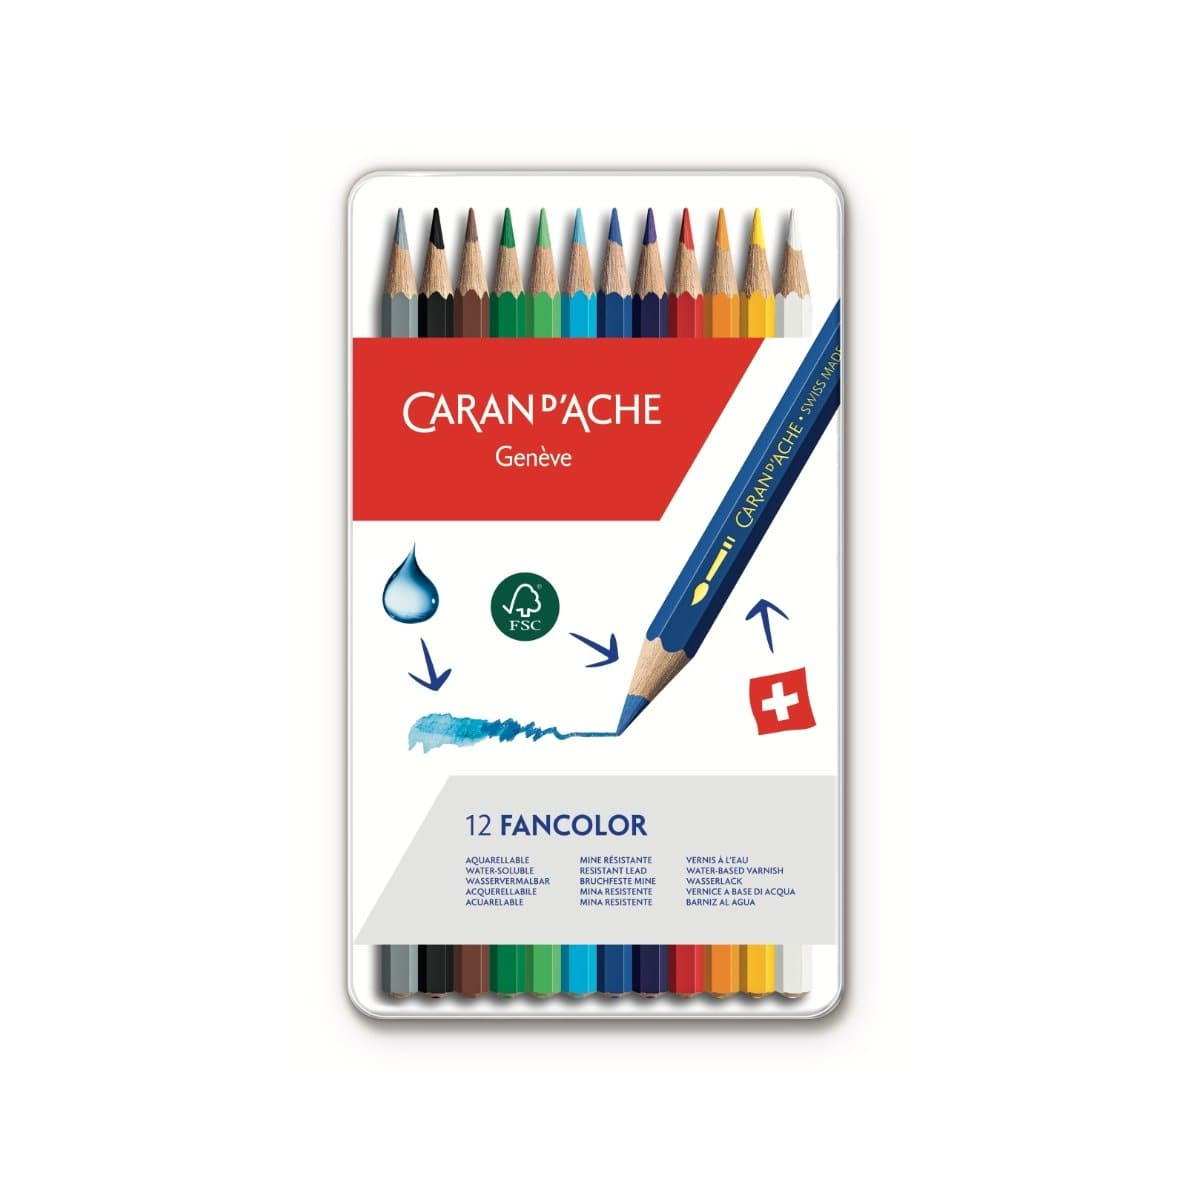 CARAN d'ACHE FANCOLOR Color Pencil, 12/metal case